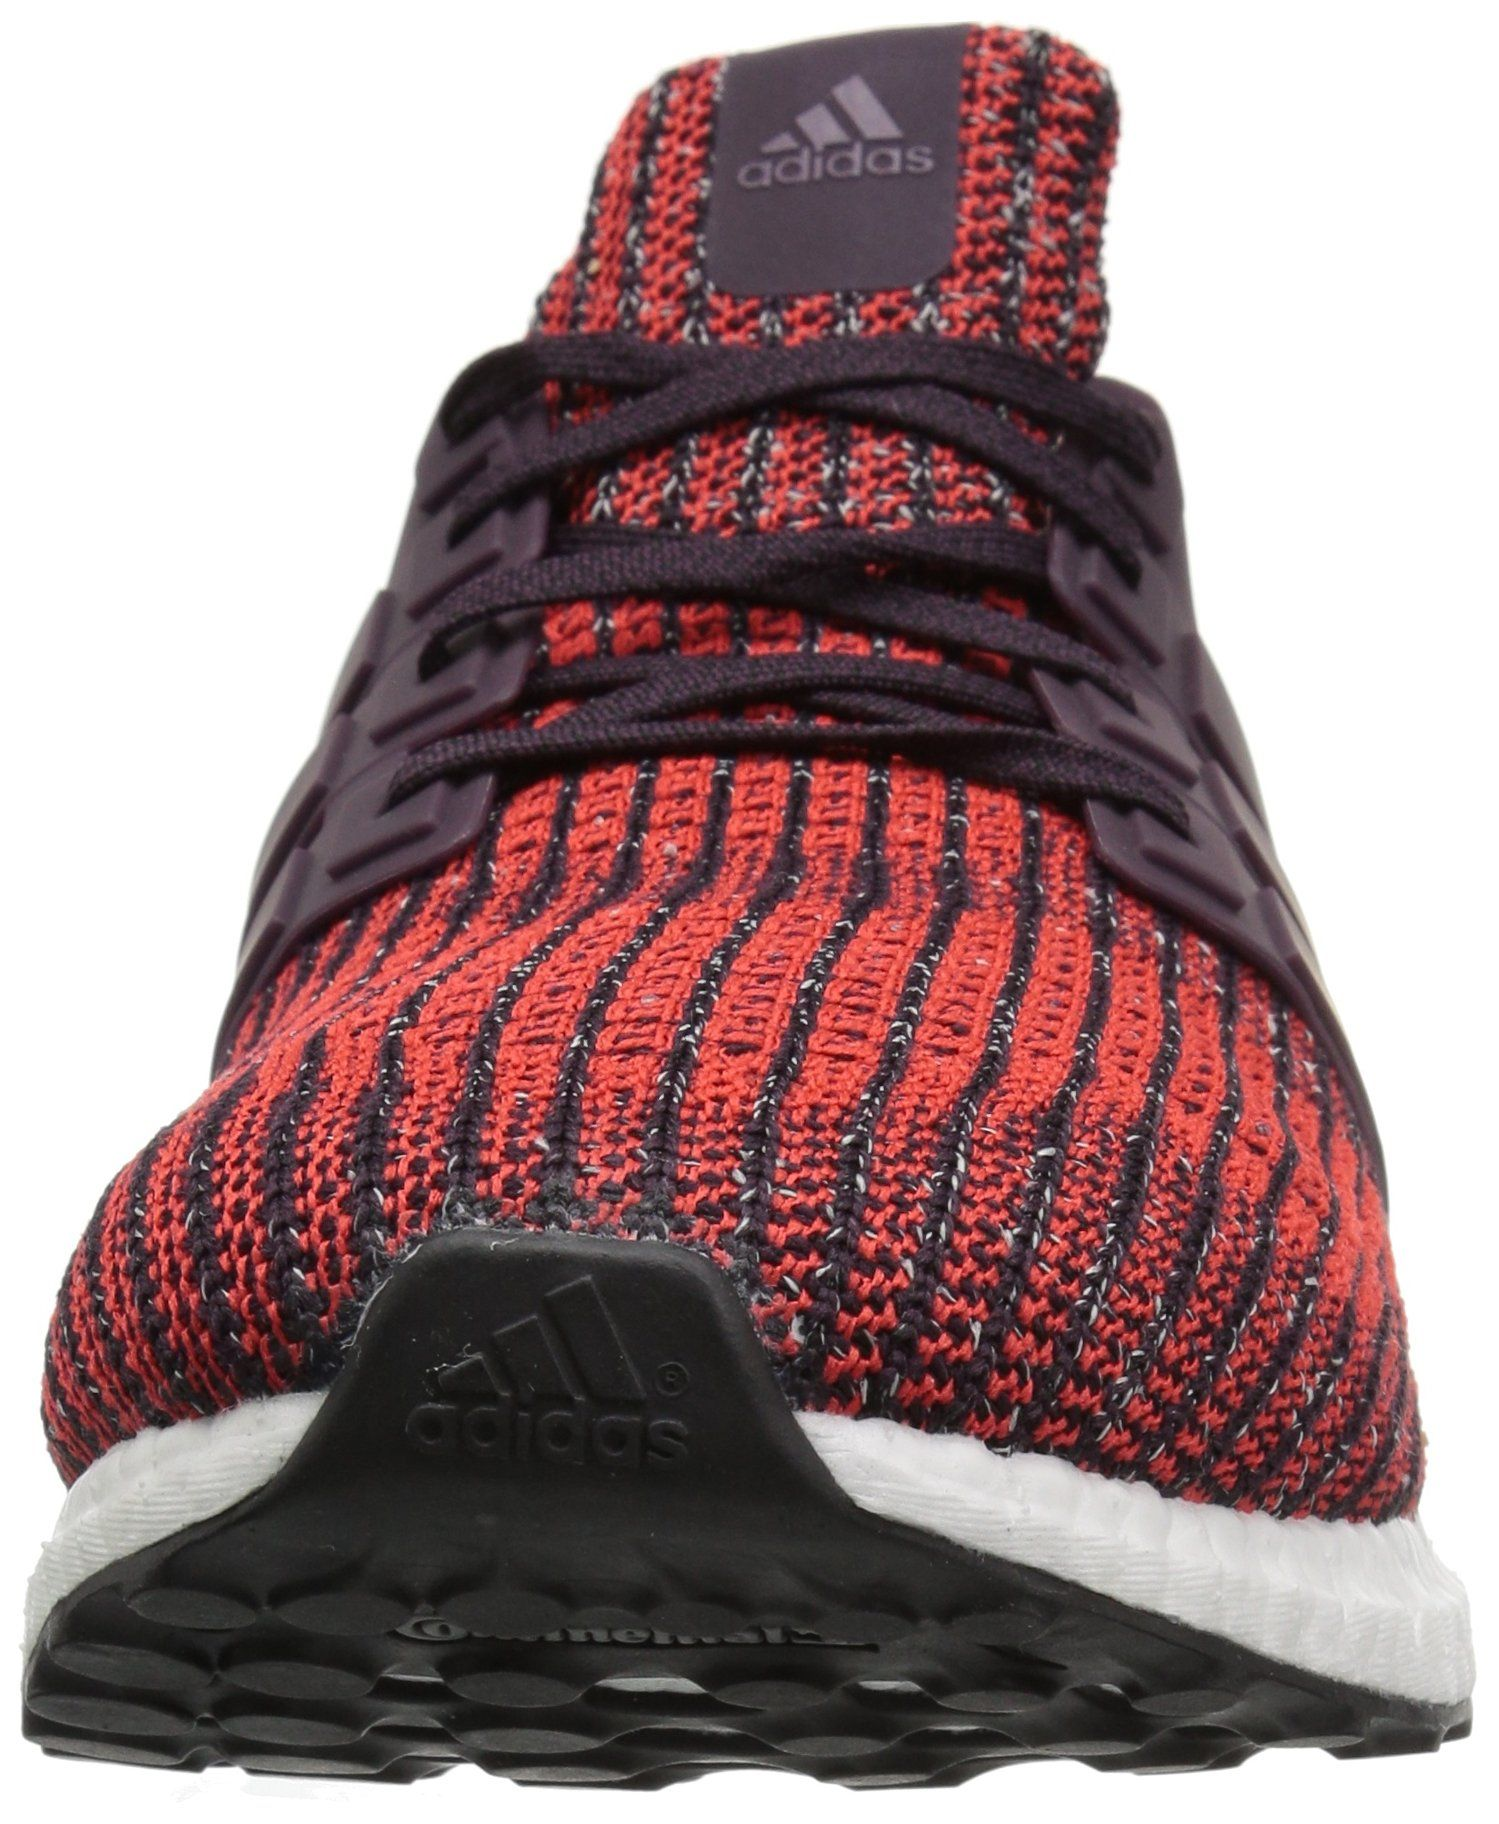 38bf610a0 adidas Performance Mens Ultraboost Road Running Shoe Noble Red Noble  Red Core Black 10.5 M US     More info could be found at the image url.